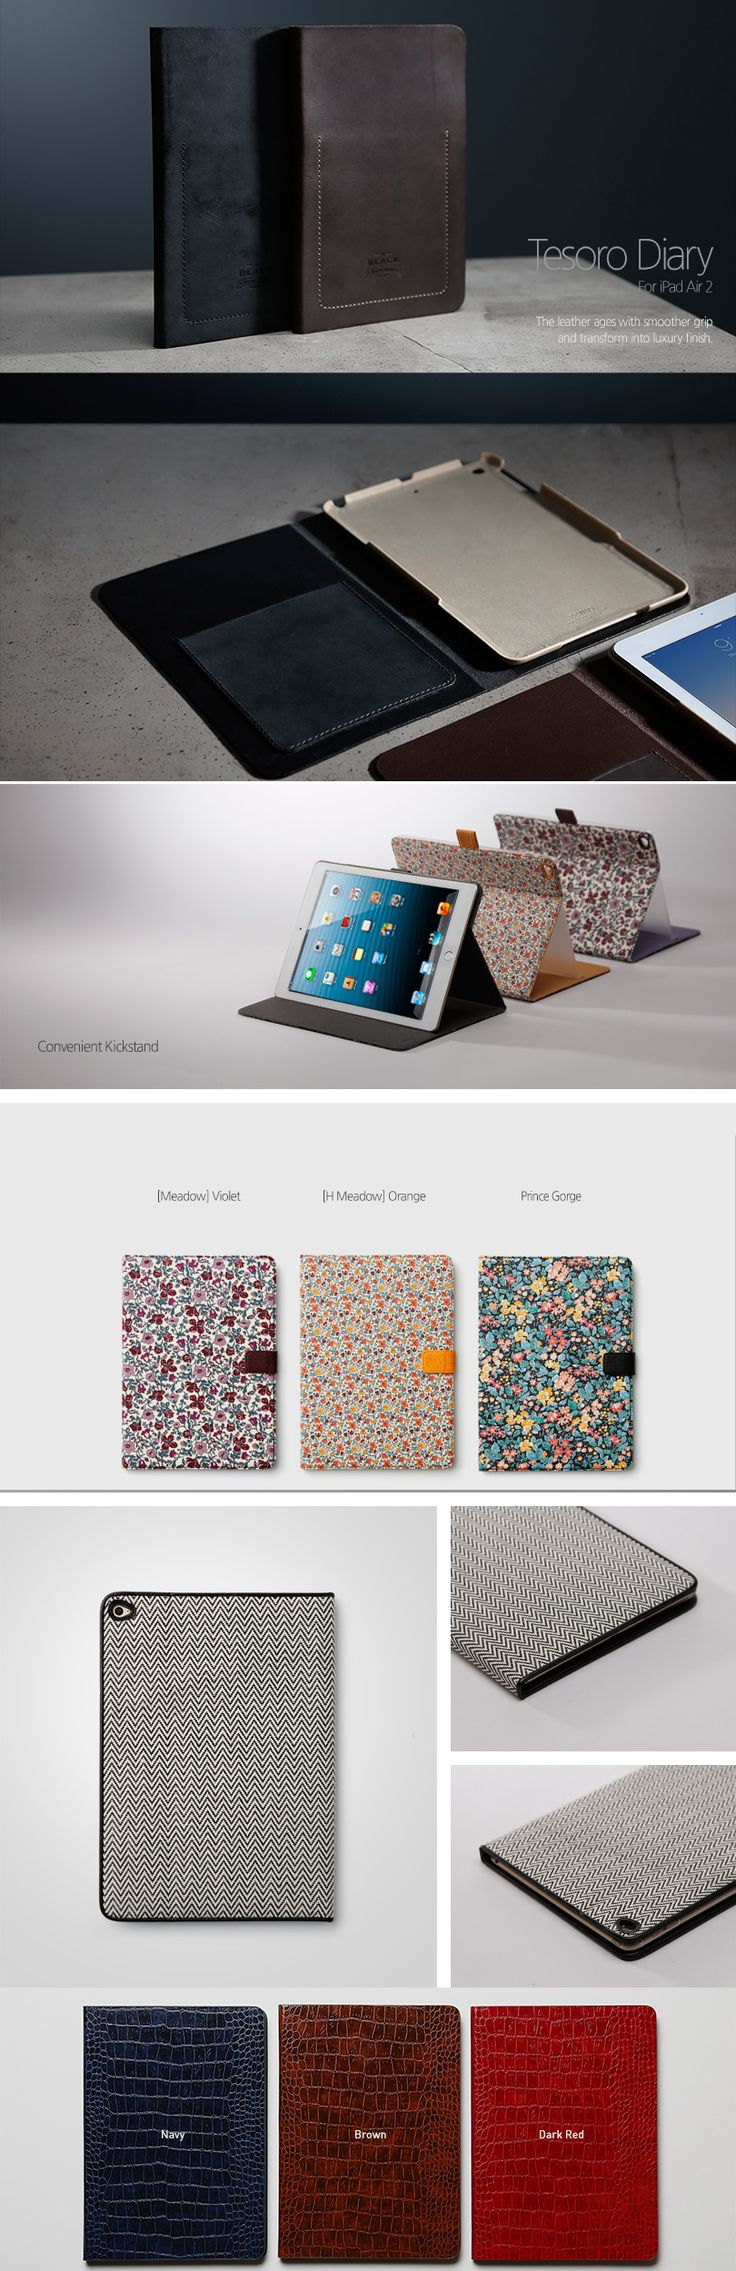 Now >> BIG SALE >>> ALL iPad Air Cases in timeless style >>> 25% <<< http://atree4u.com/products/iPad-Air-Series/171/